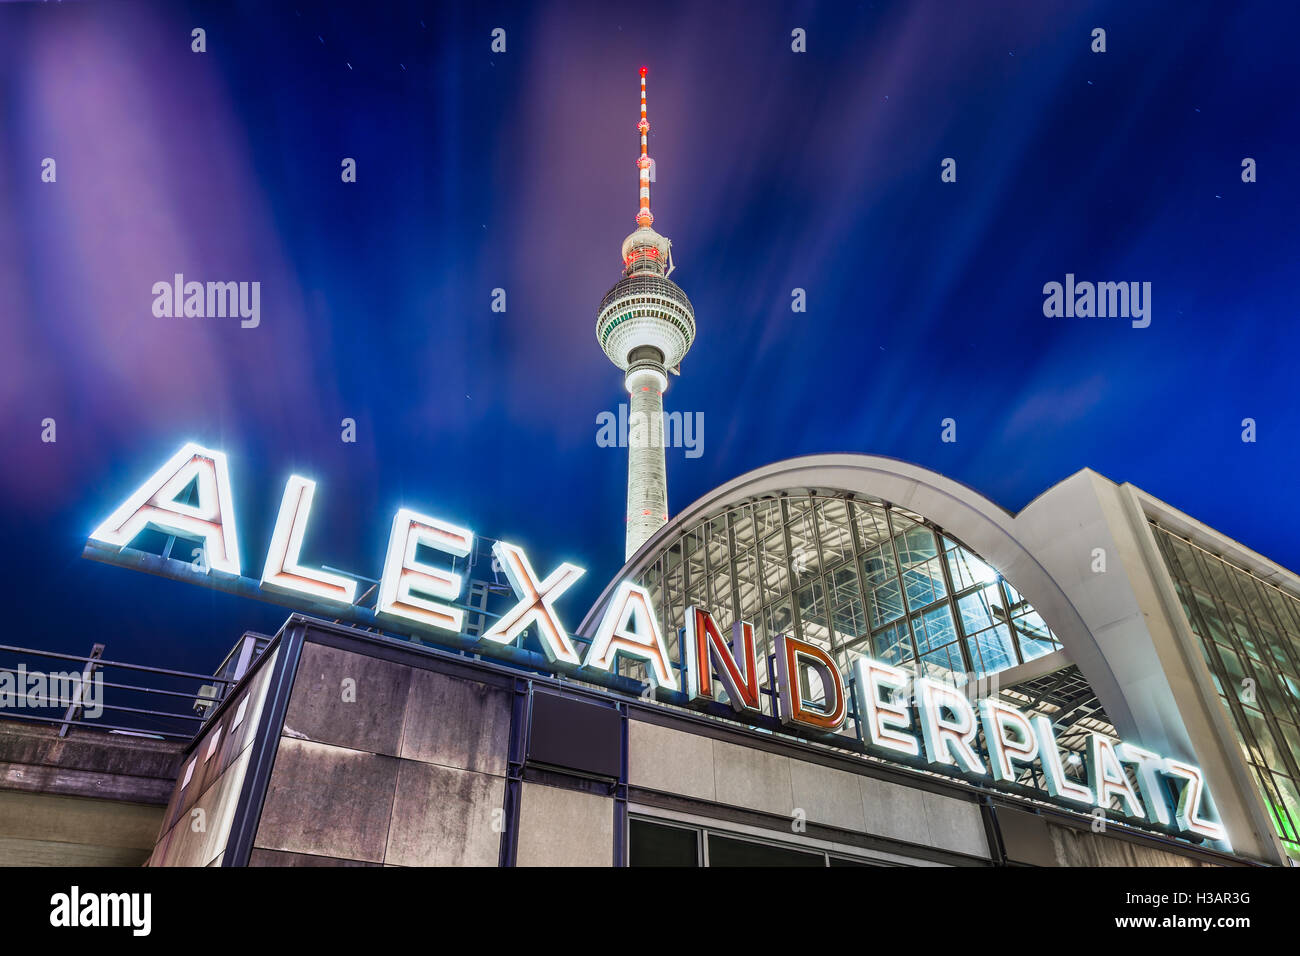 Classic wide-angle view of Alexanderplatz neon sign with famous TV tower and train station at night Berlin, Germany Stock Photo